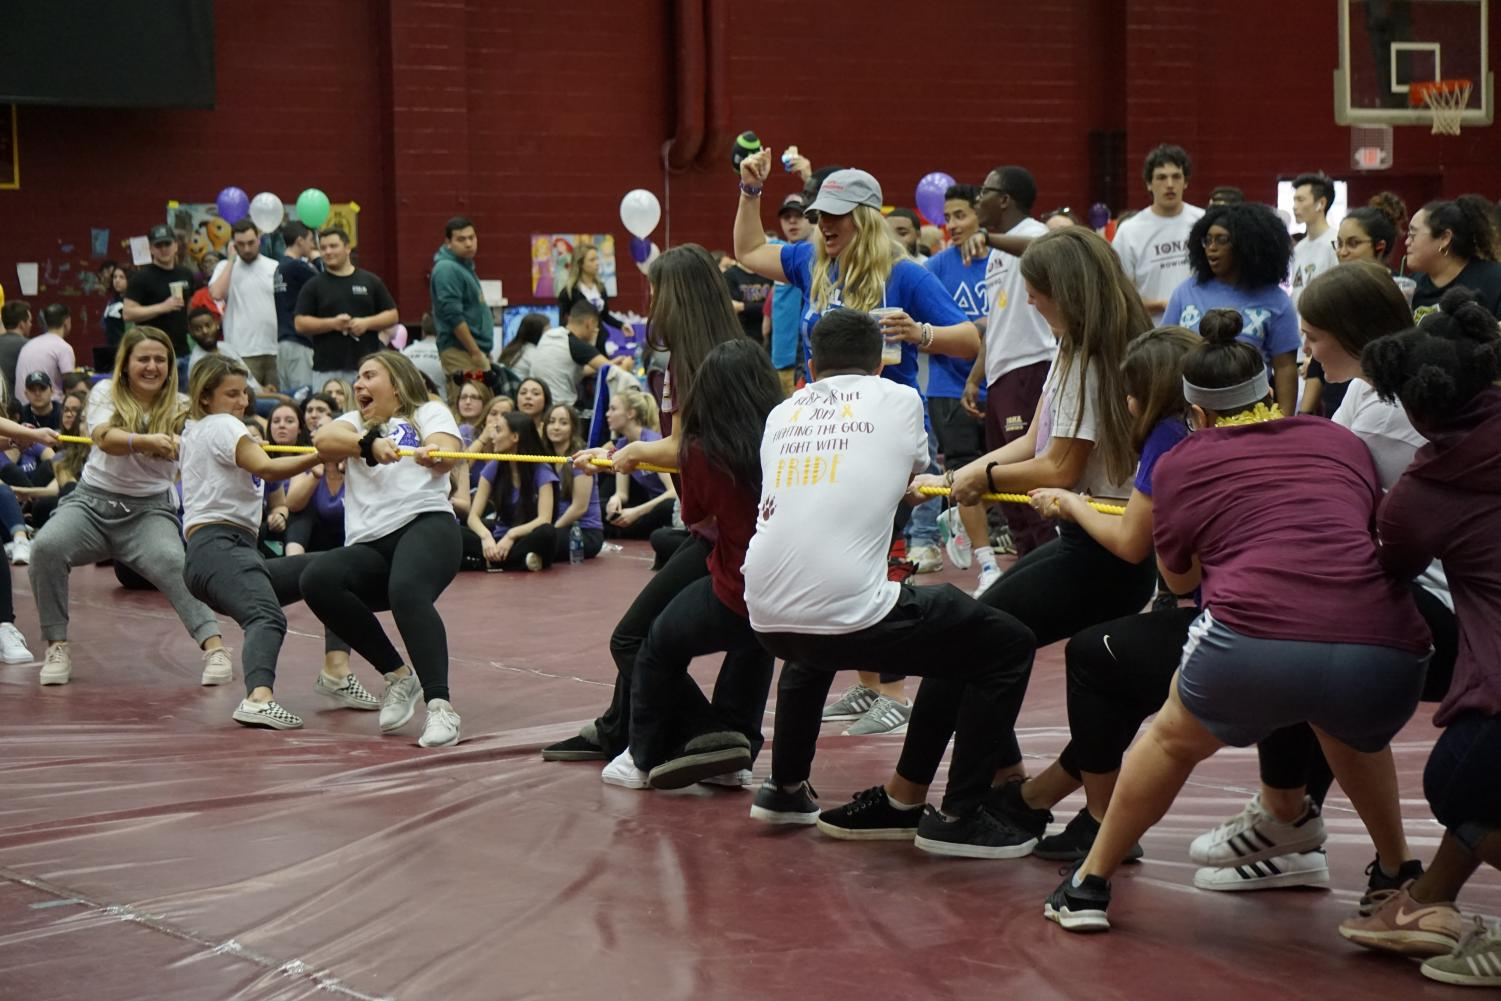 Iona Relay participants take part in a tug-of-war competition, which was one of the many activities that Iona students could participate in during the event.